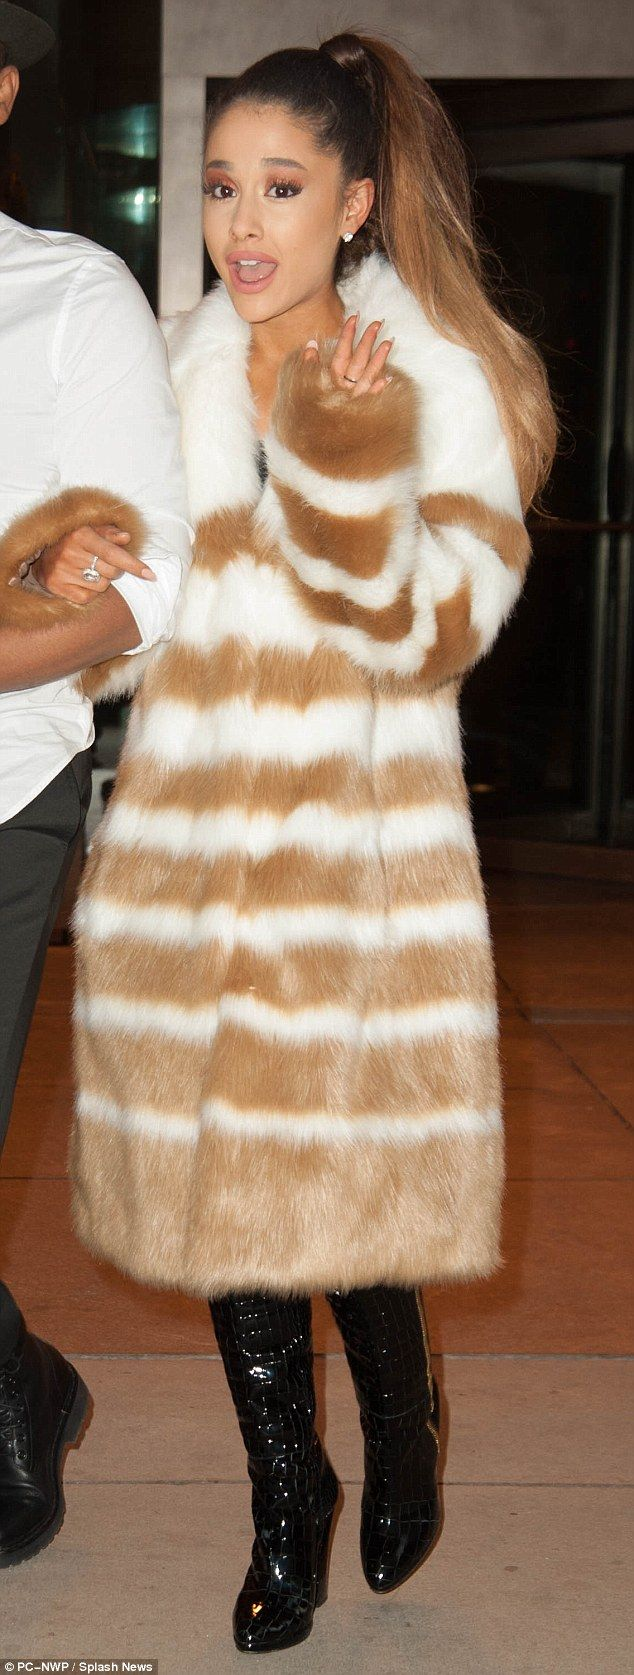 3155cdd1fa Unusually skin shy: Ariana Grande was completely covered up as she stepped  out in NYC on Wednesday in a faux fur coat and knee-high shiny black boots